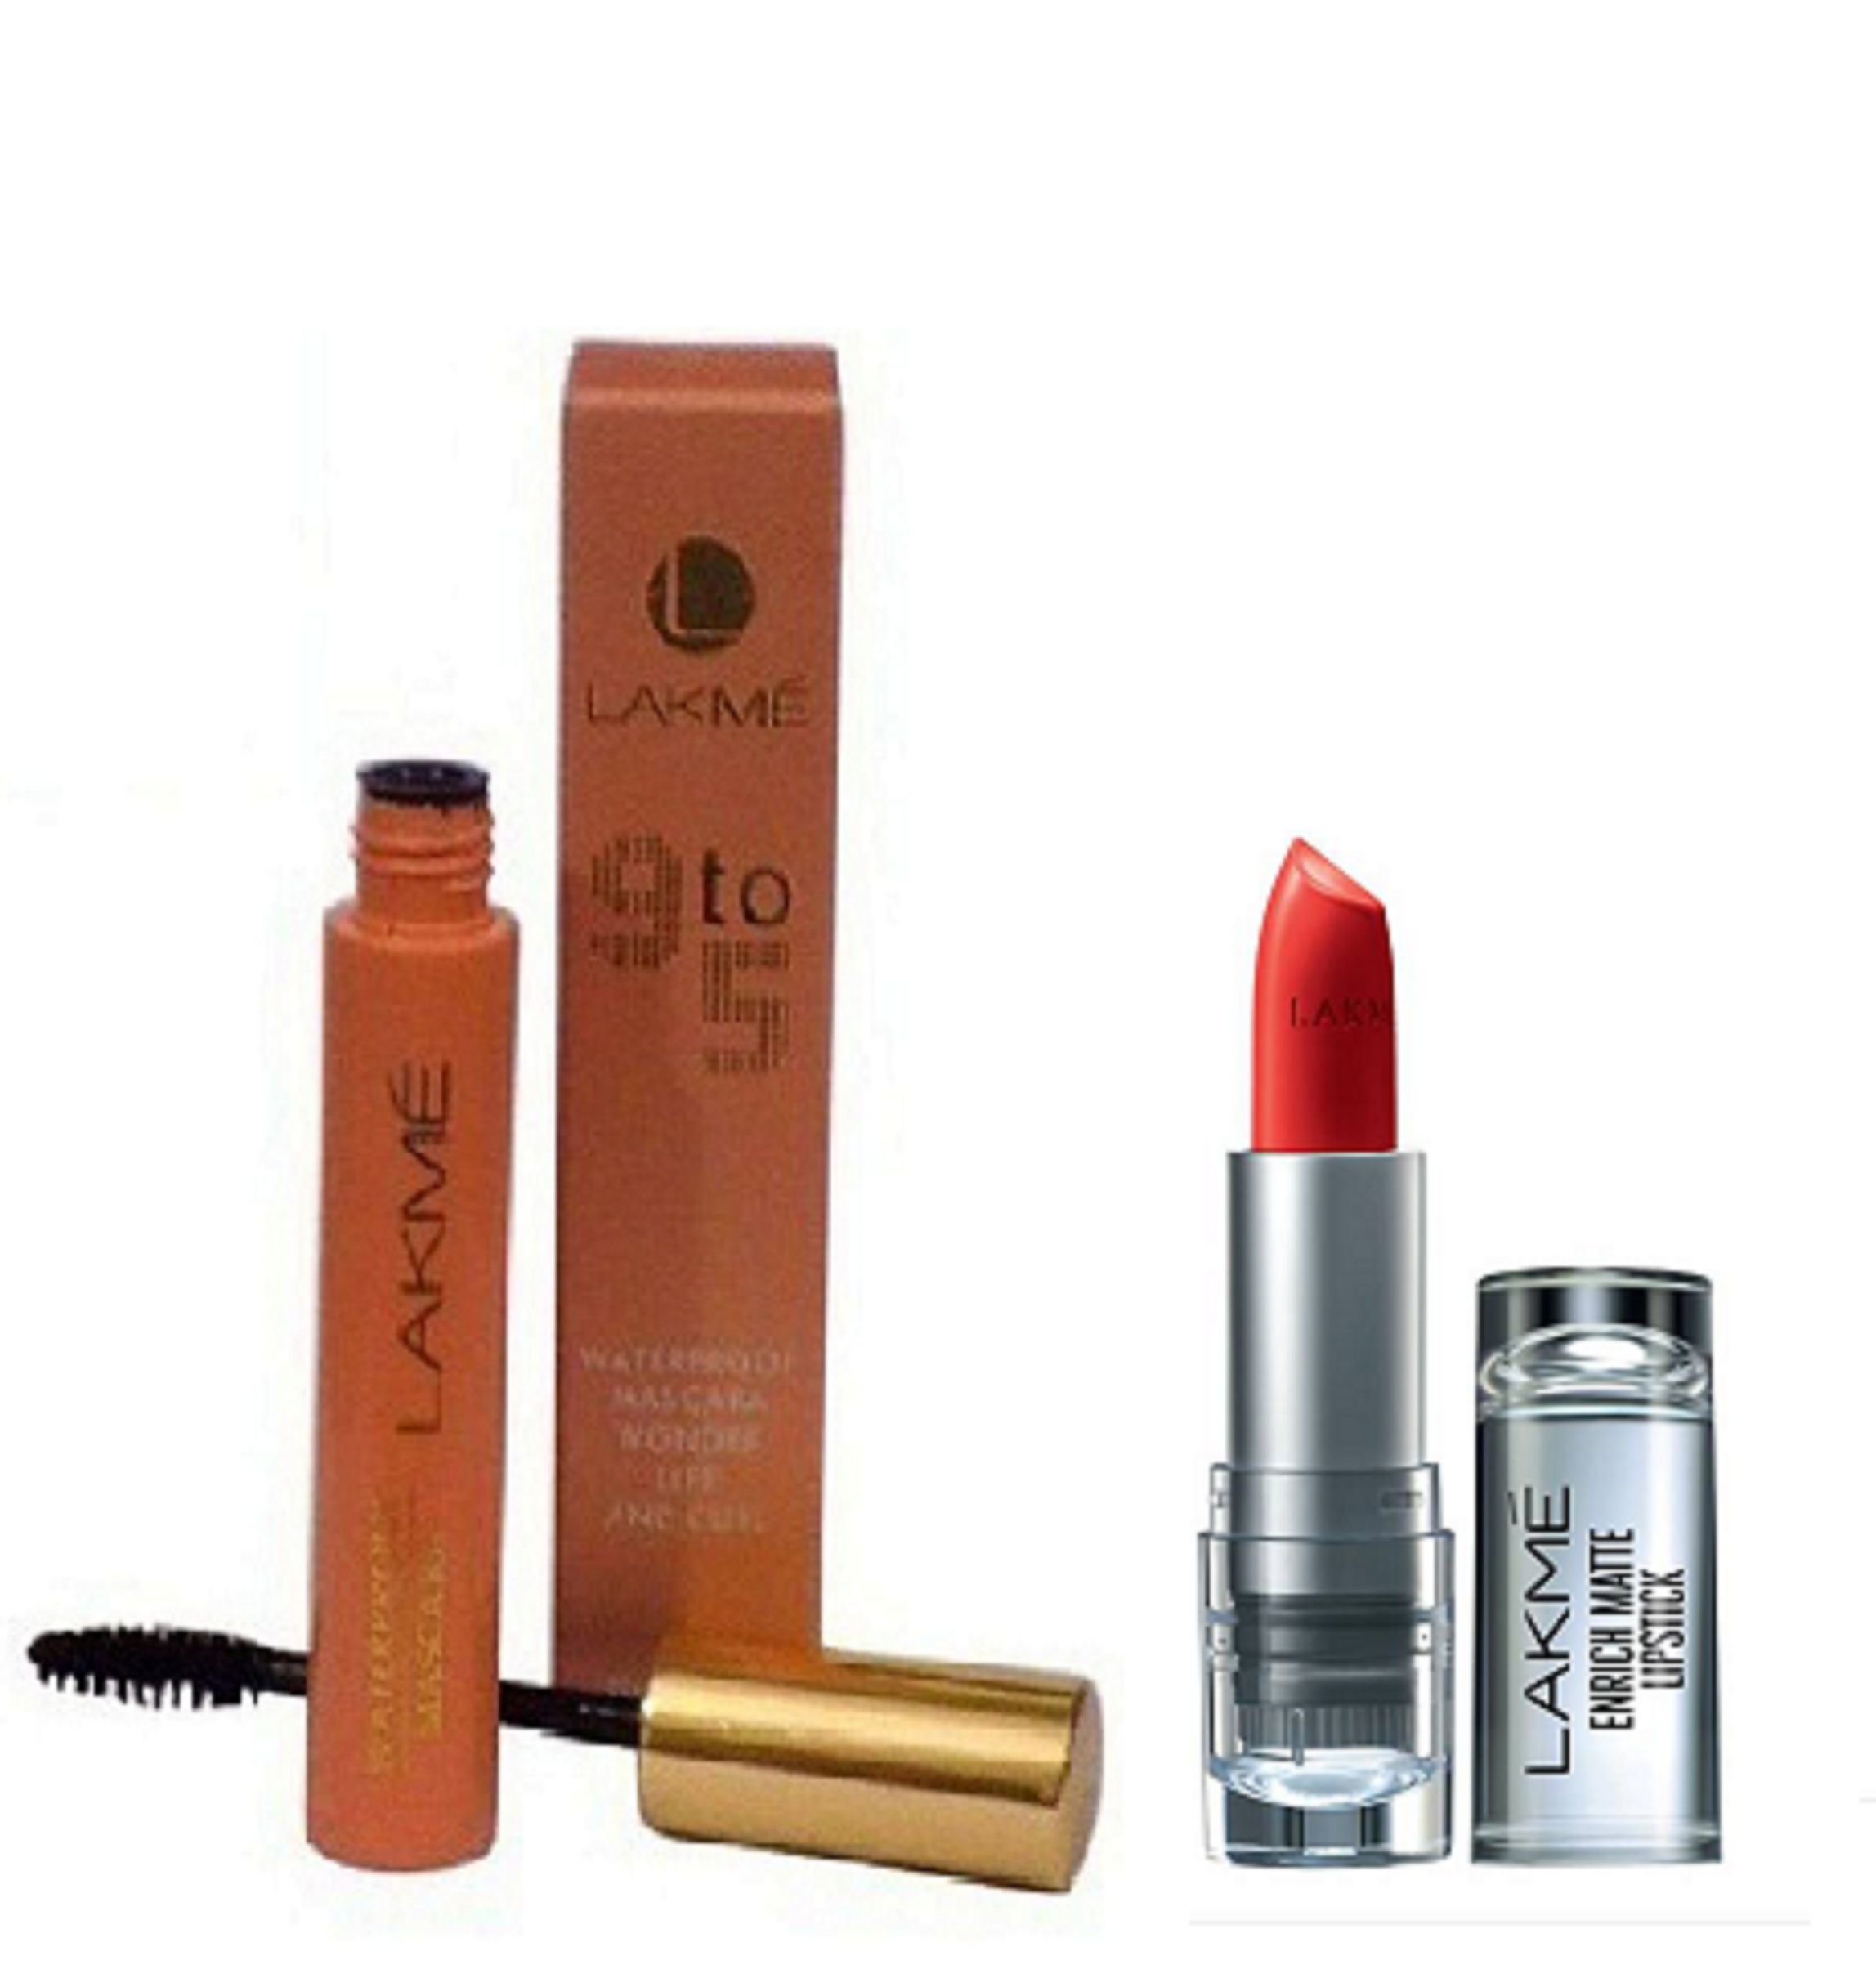 Lakme 9 To 5 Lakme 9 To 5 Makeup Kit 14.7 gm: Buy Lakme 9 To 5 Lakme 9 To 5 Makeup Kit 14.7 gm at Best Prices in India - Snapdeal